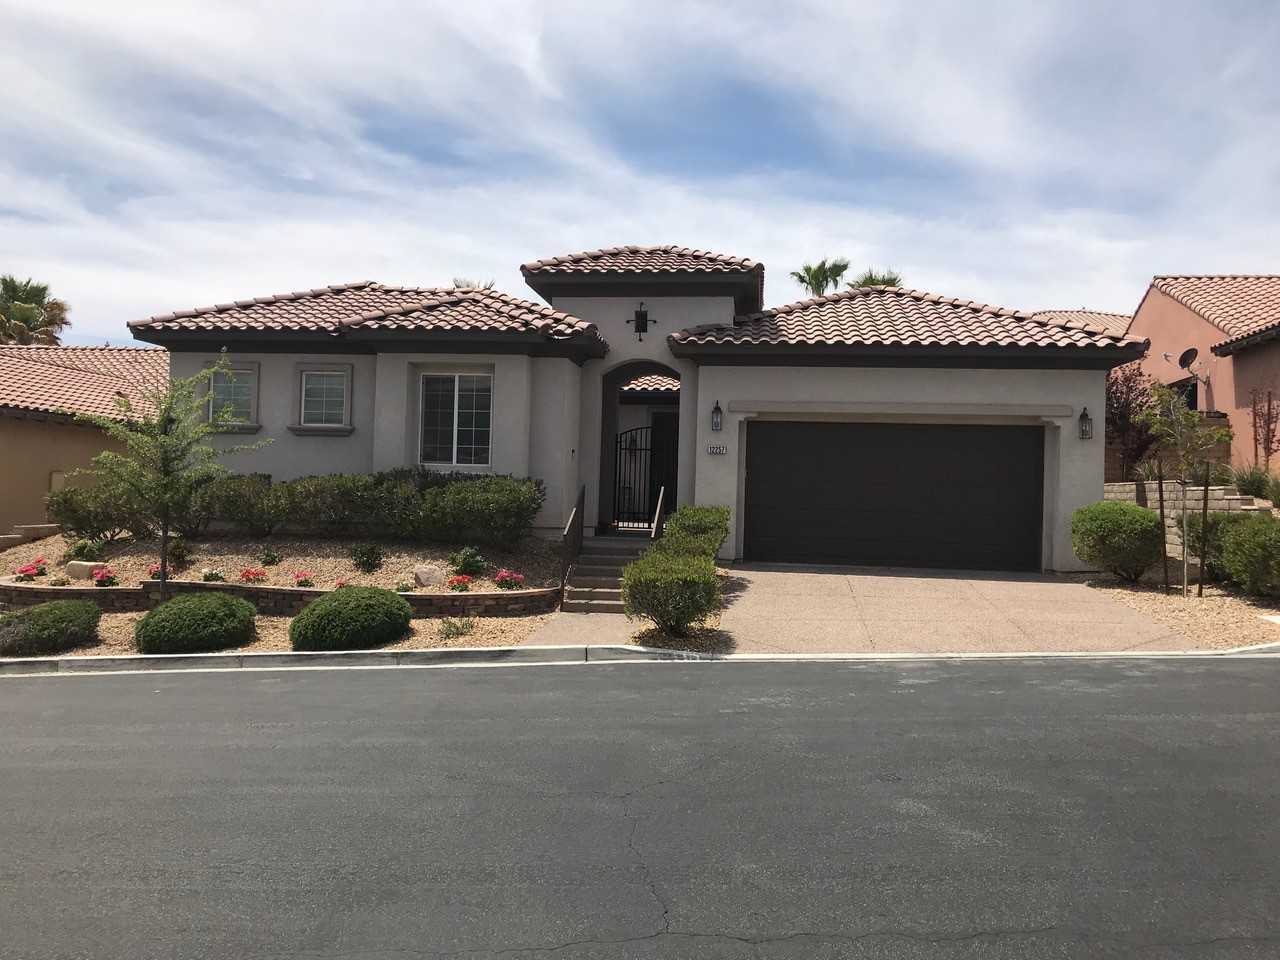 12257 Montura Rosa - Summerlin Home For Sale